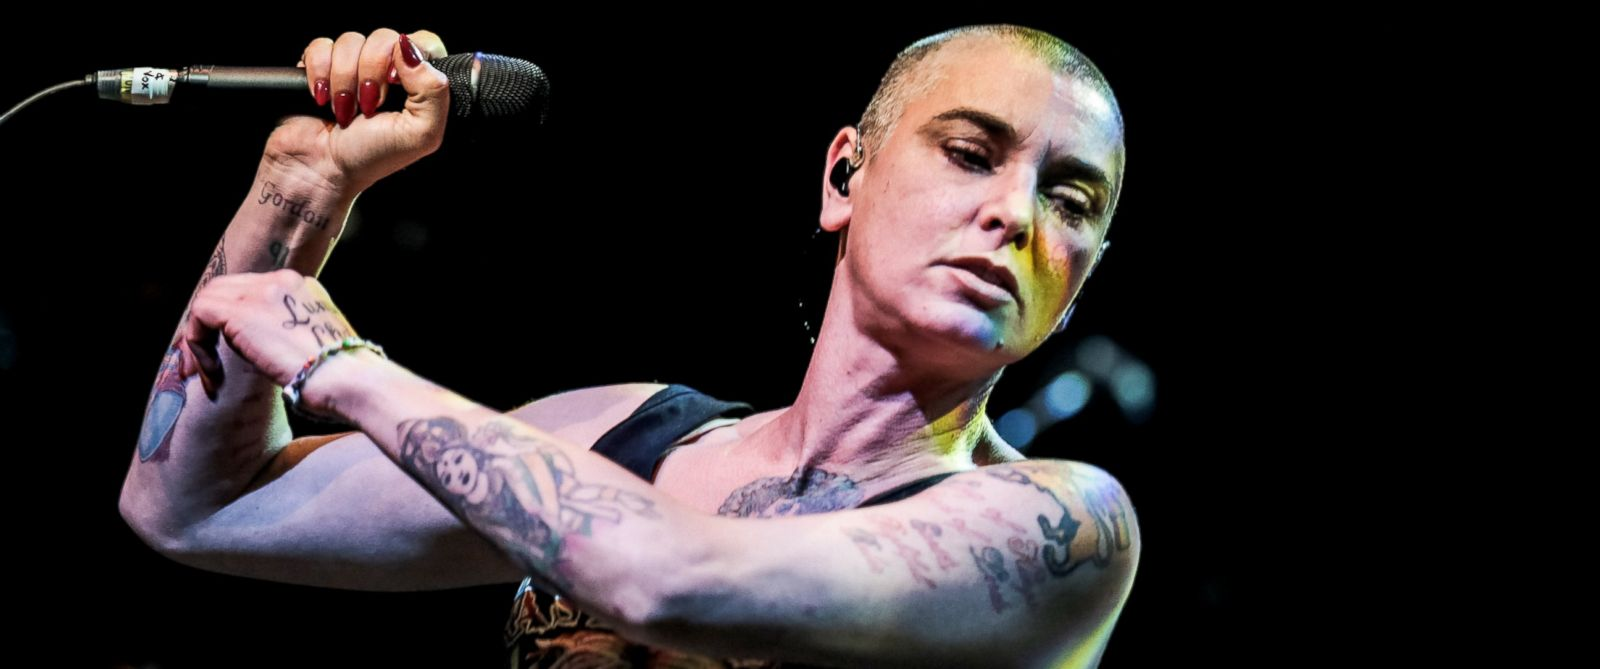 PHOTO: Sinead OConnor performs on stage at The Roundhouse, Aug. 12, 2014, in London.